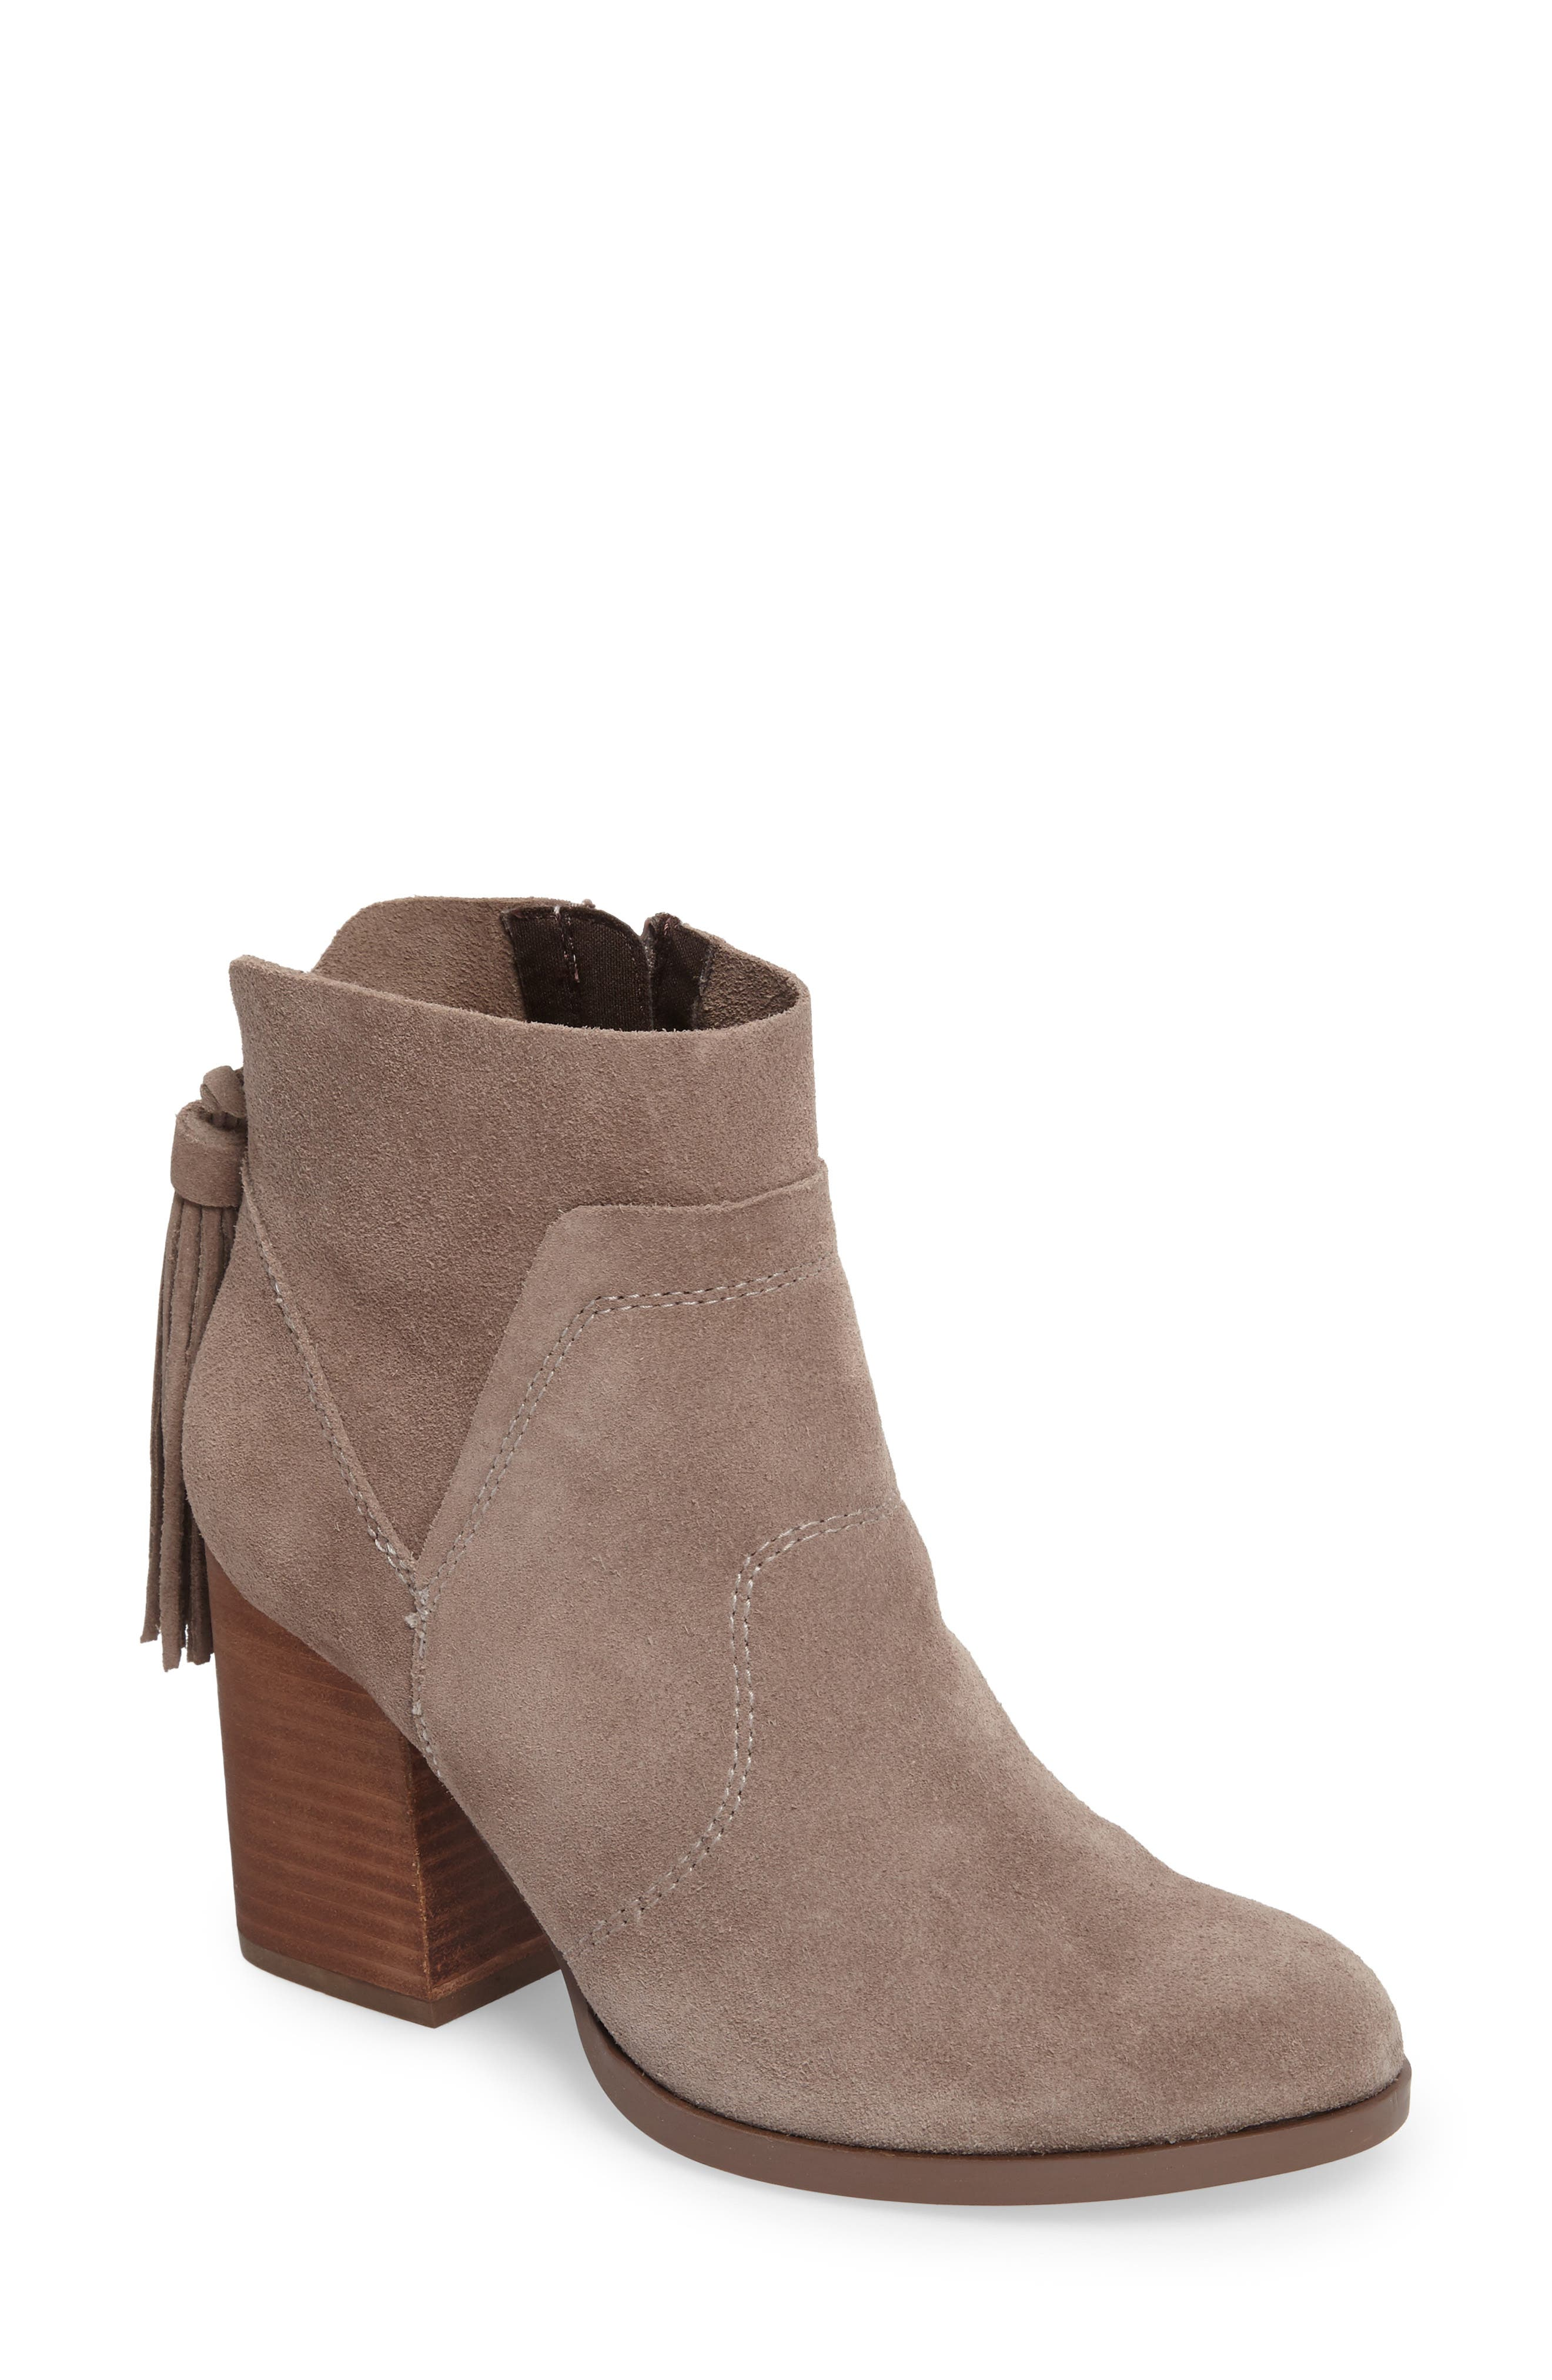 Main Image - Sole Society Ambrose Bootie (Women)